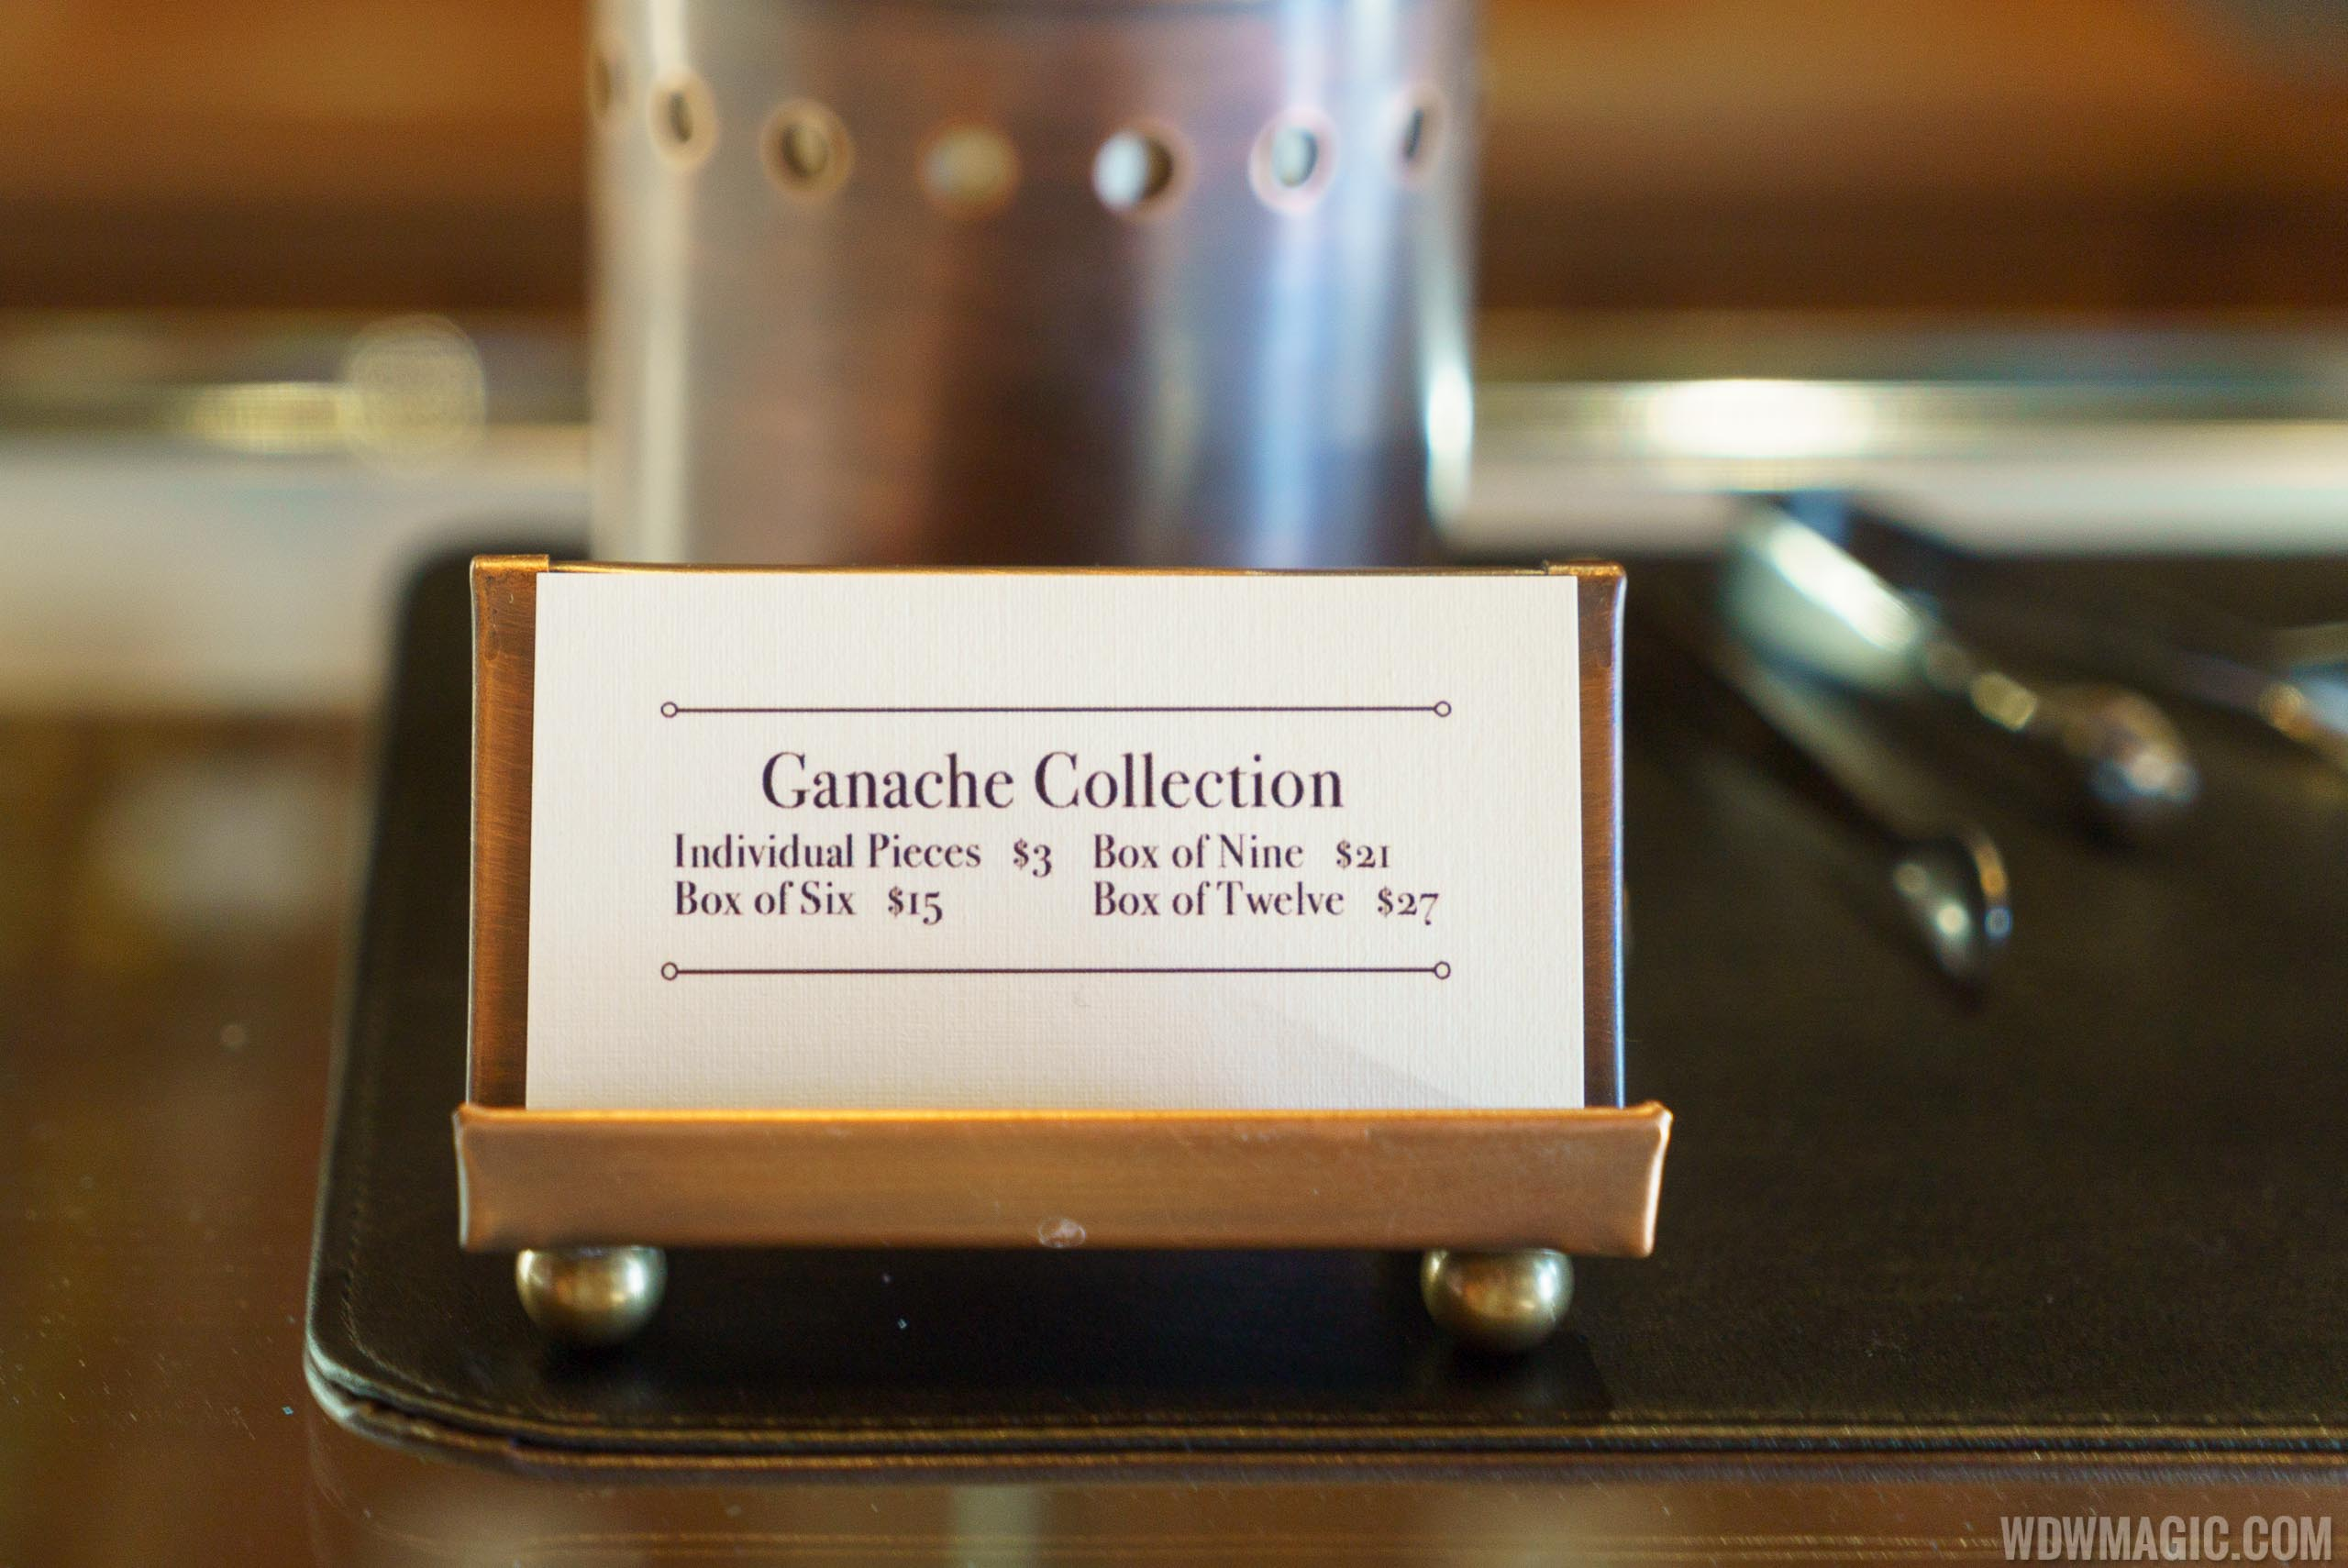 The Ganachery - Ganache Collection pricing